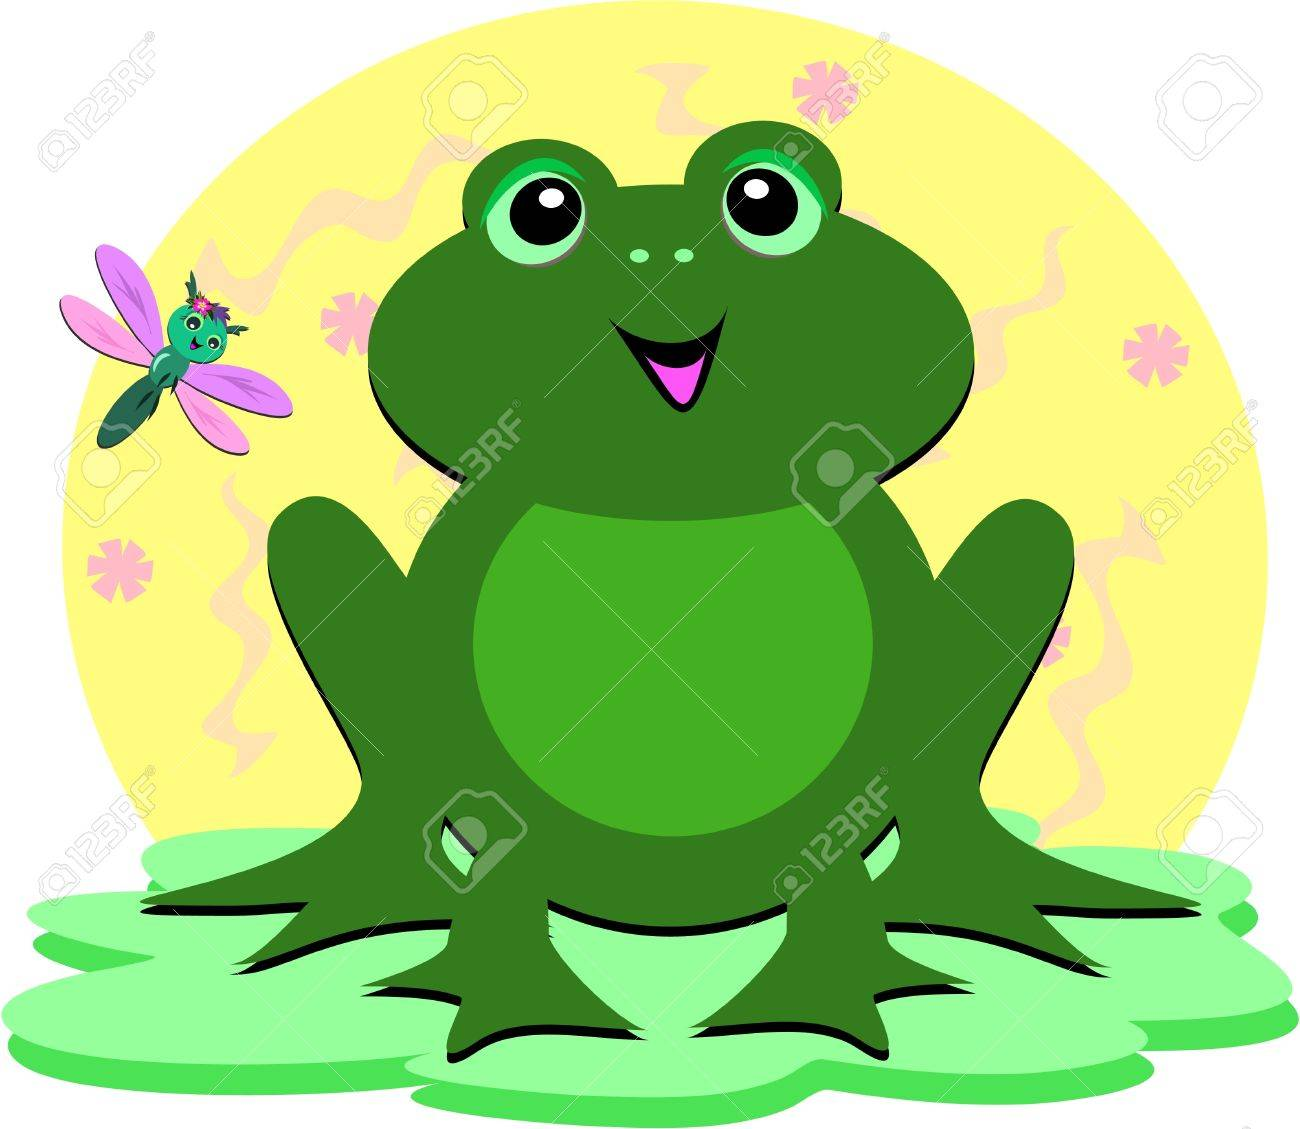 green frog and dragonfly royalty free cliparts vectors and stock